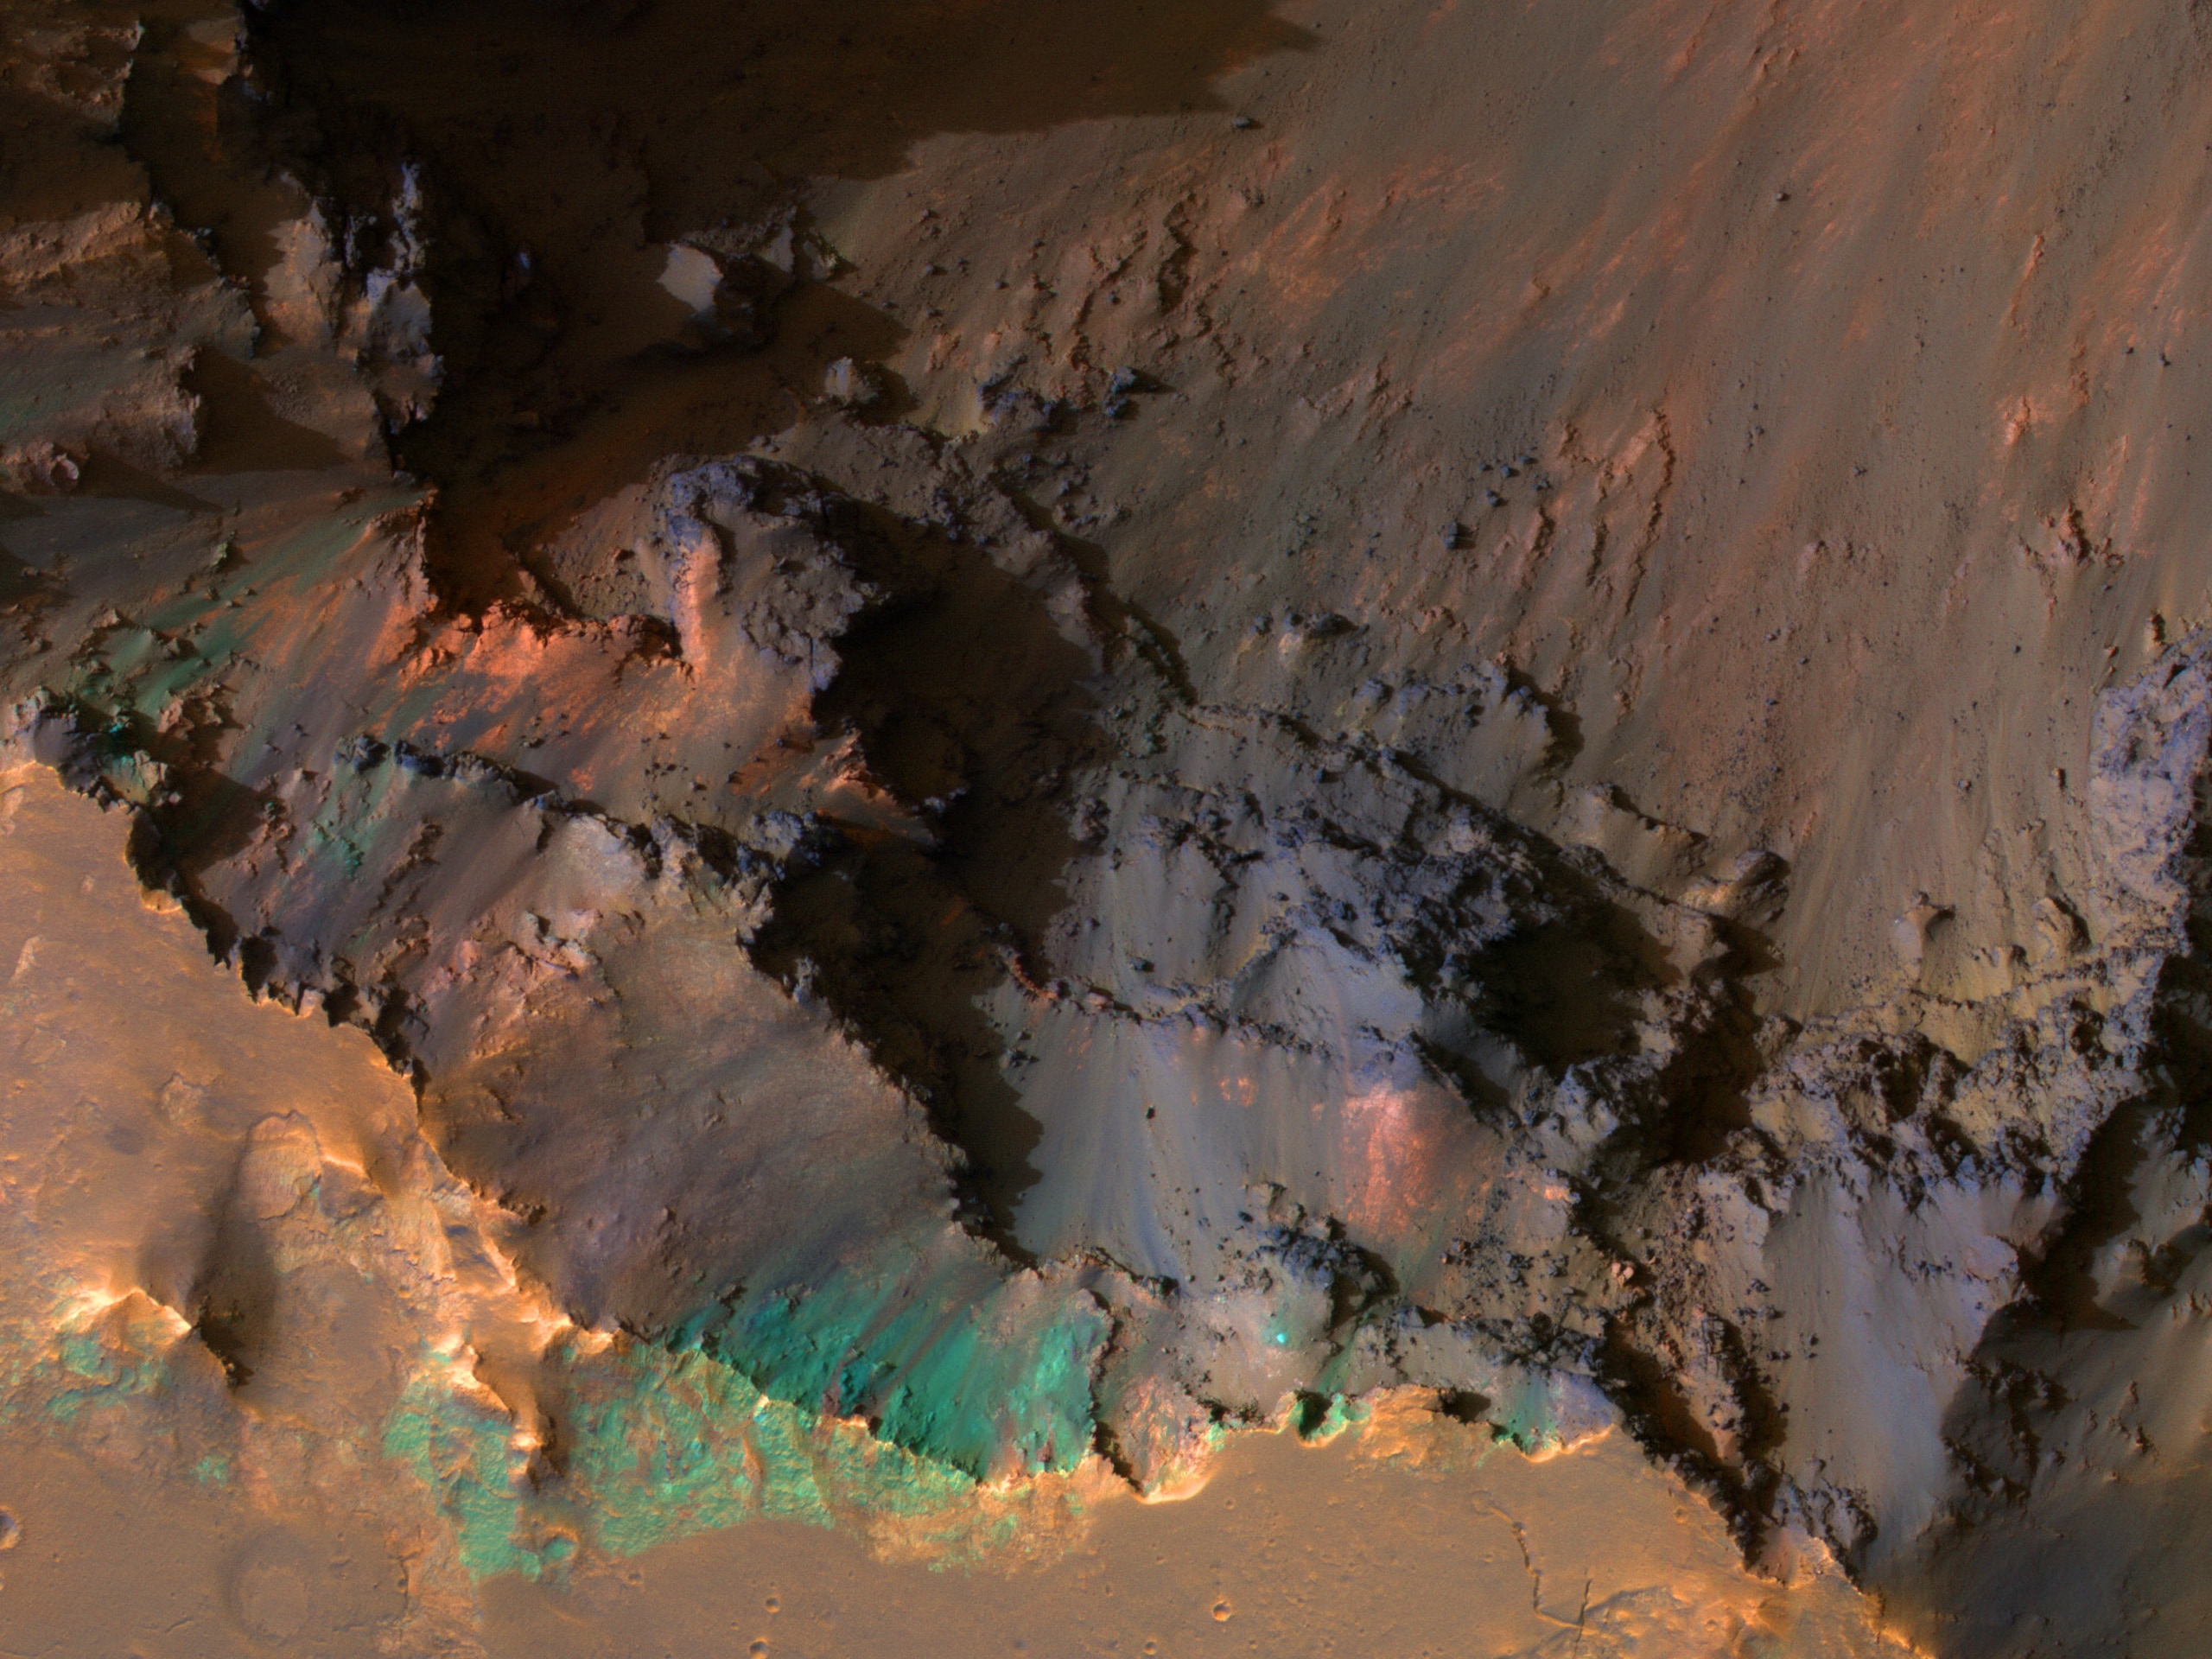 The Top of Coprates Chasma